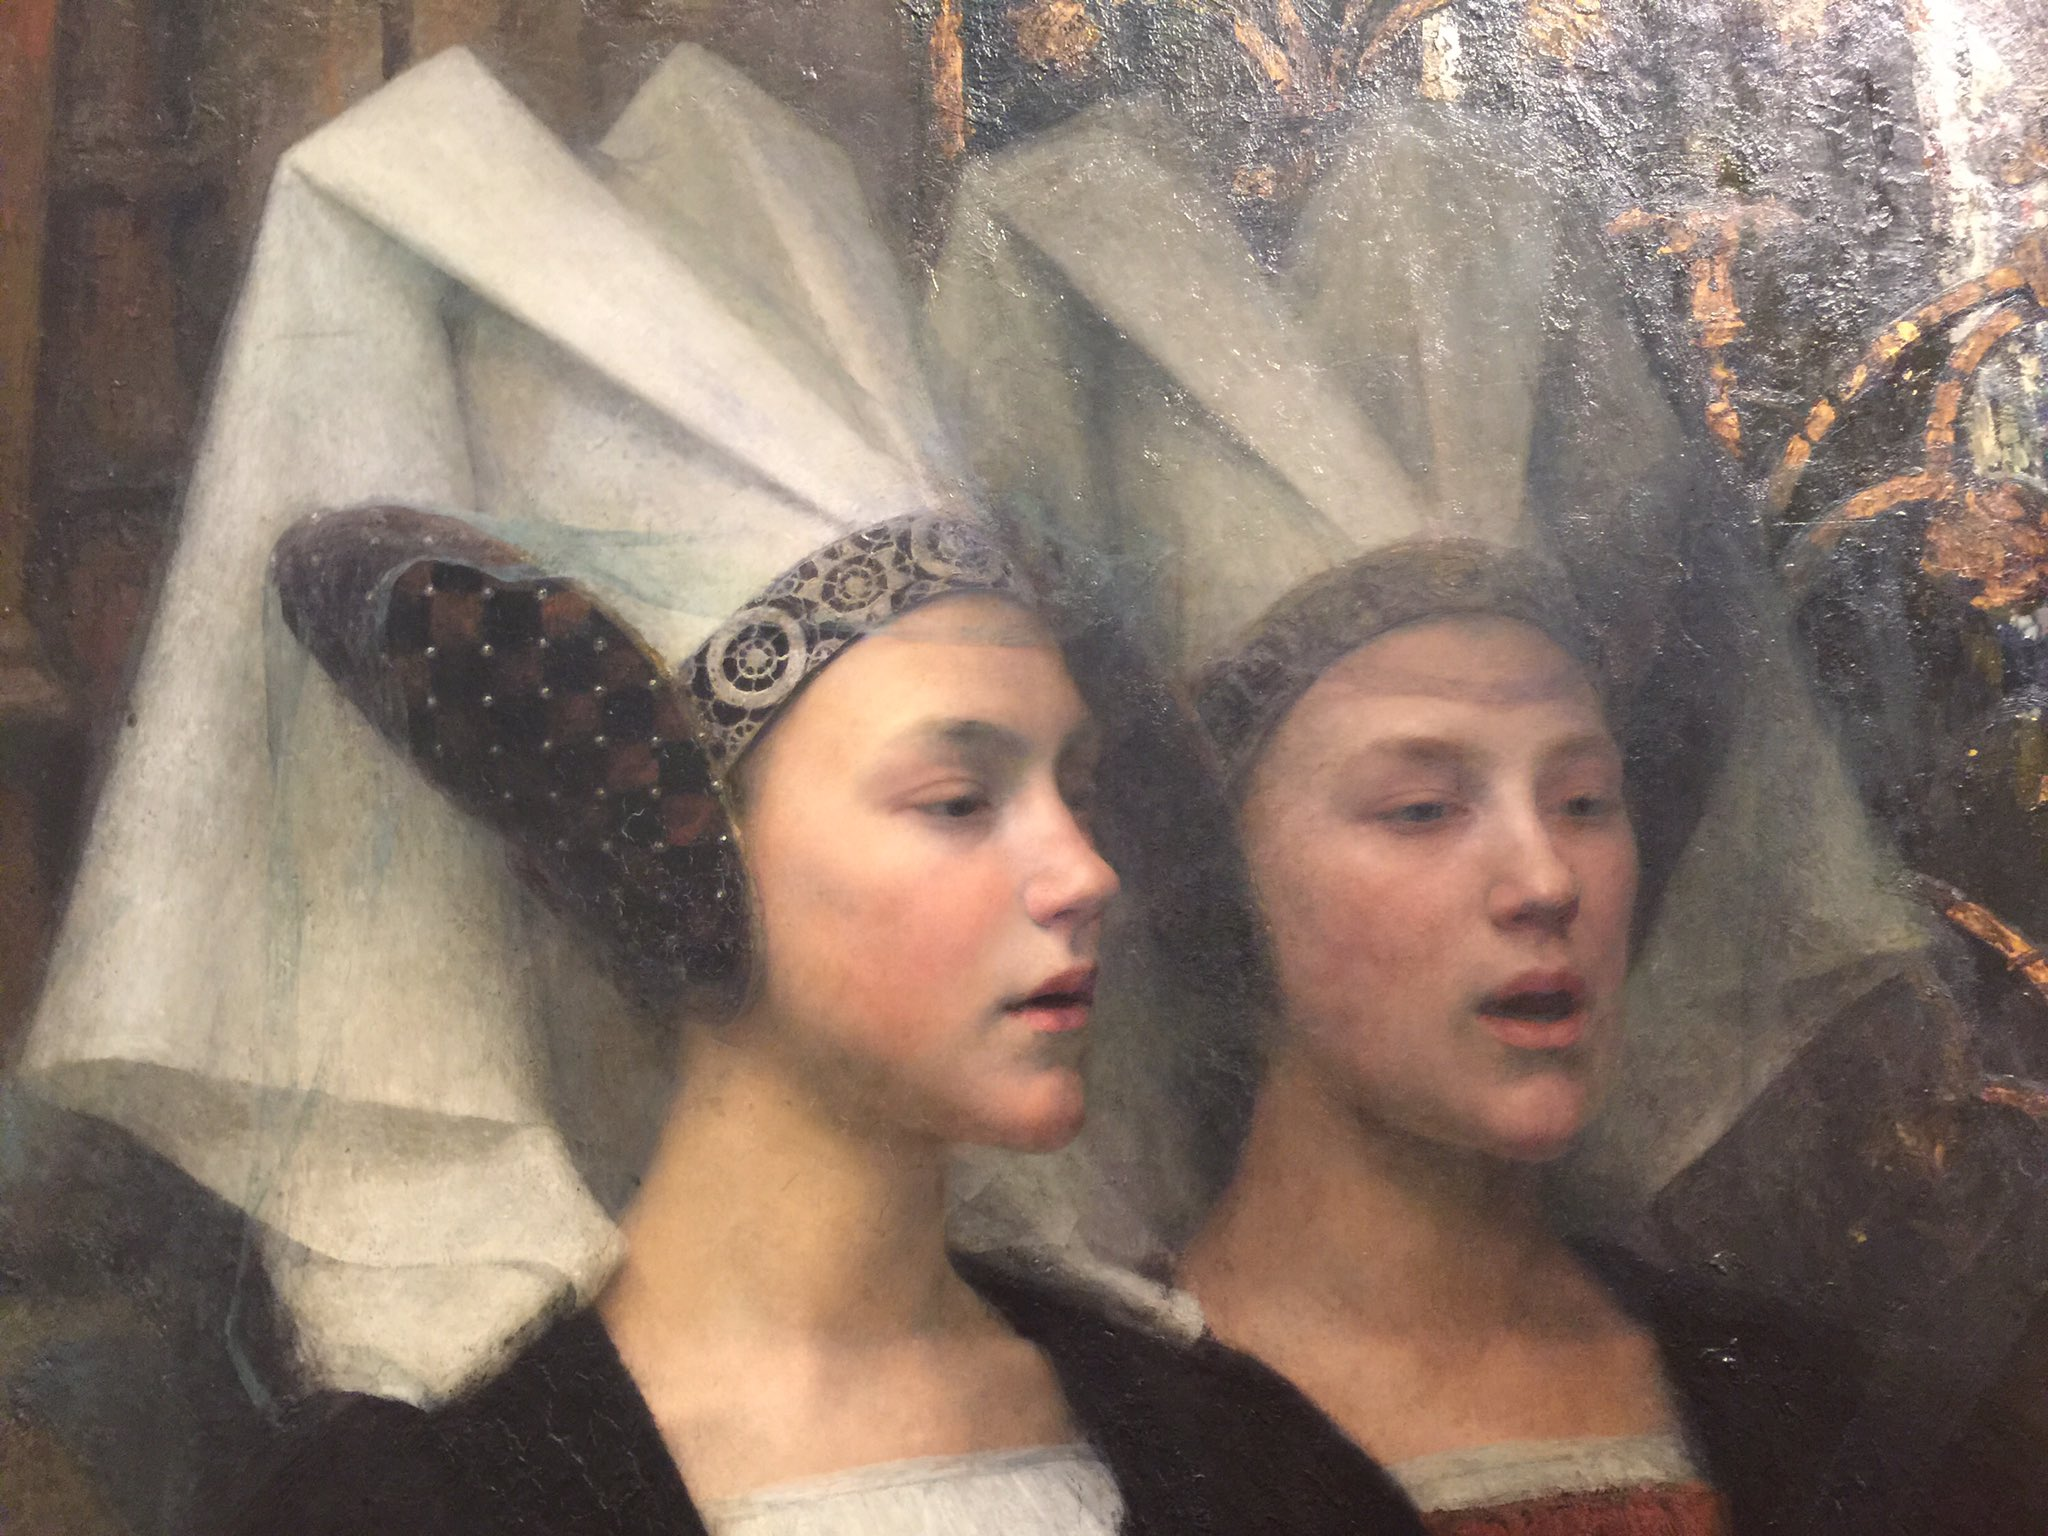 Detail from 'The Book of Peace', Edgard Maxence, 1913